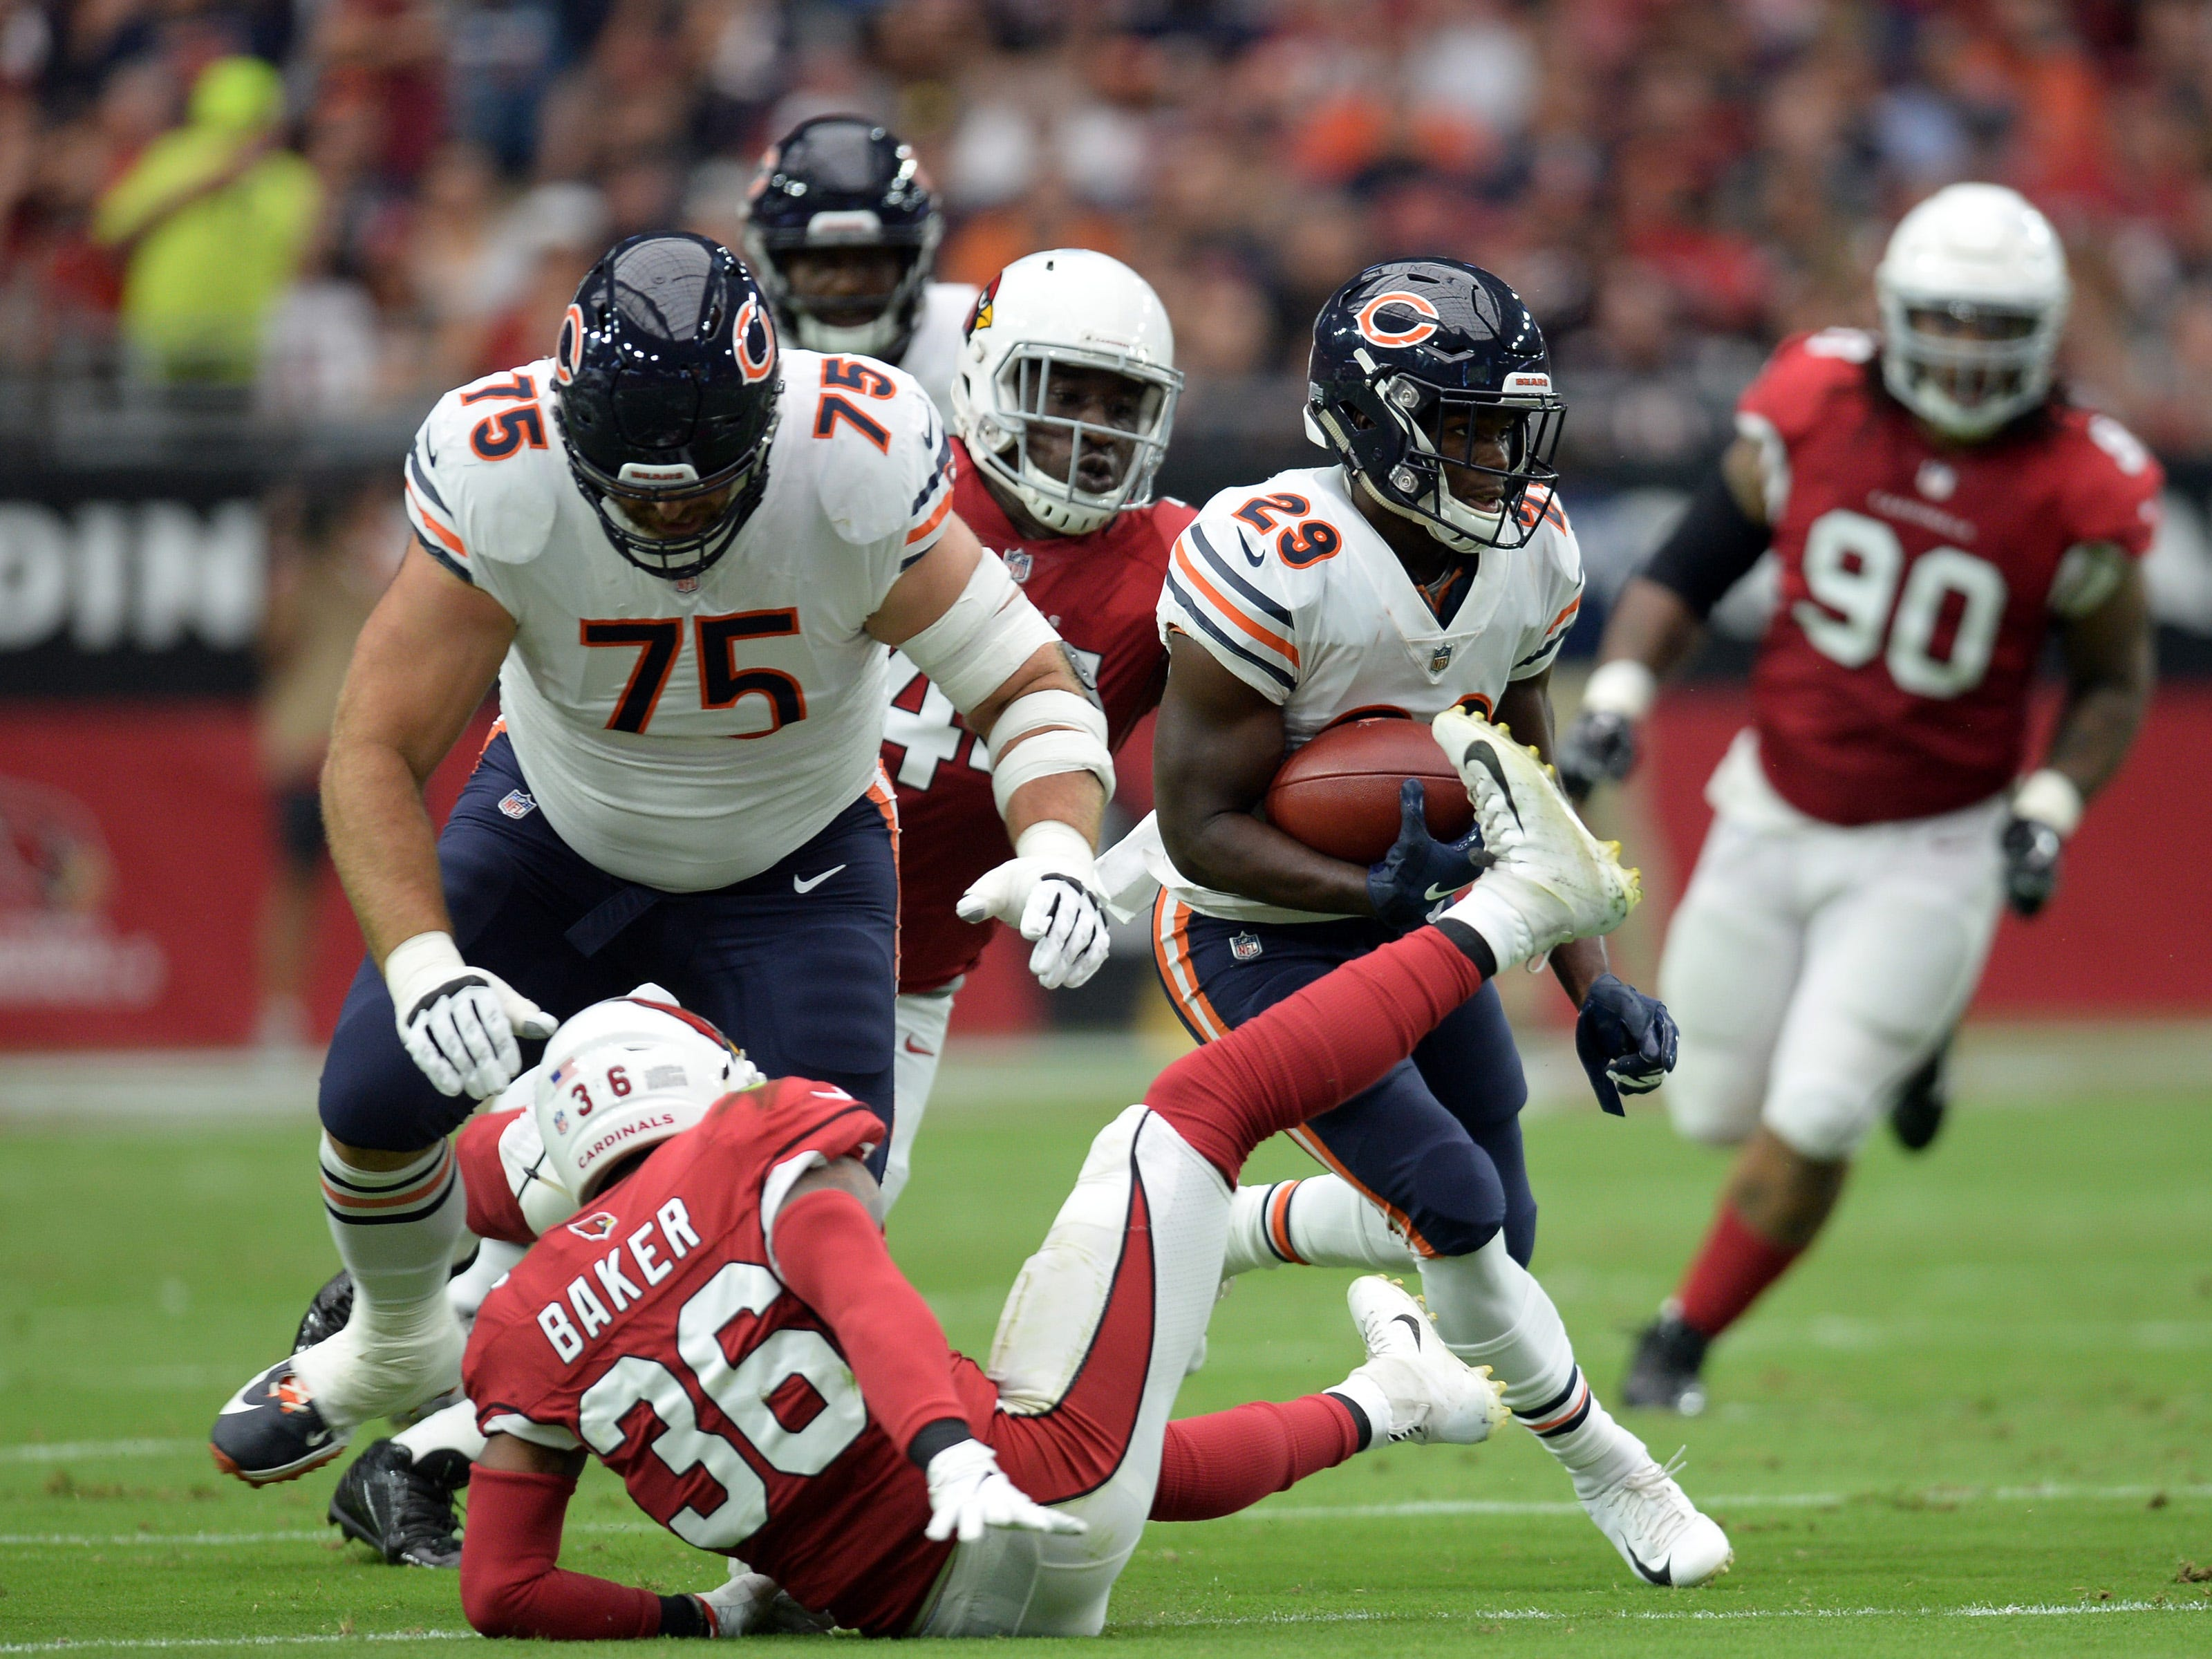 Sep 23, 2018; Glendale, AZ, USA; Chicago Bears running back Tarik Cohen (29) runs with the ball against the Arizona Cardinals during the first half at State Farm Stadium. Mandatory Credit: Joe Camporeale-USA TODAY Sports